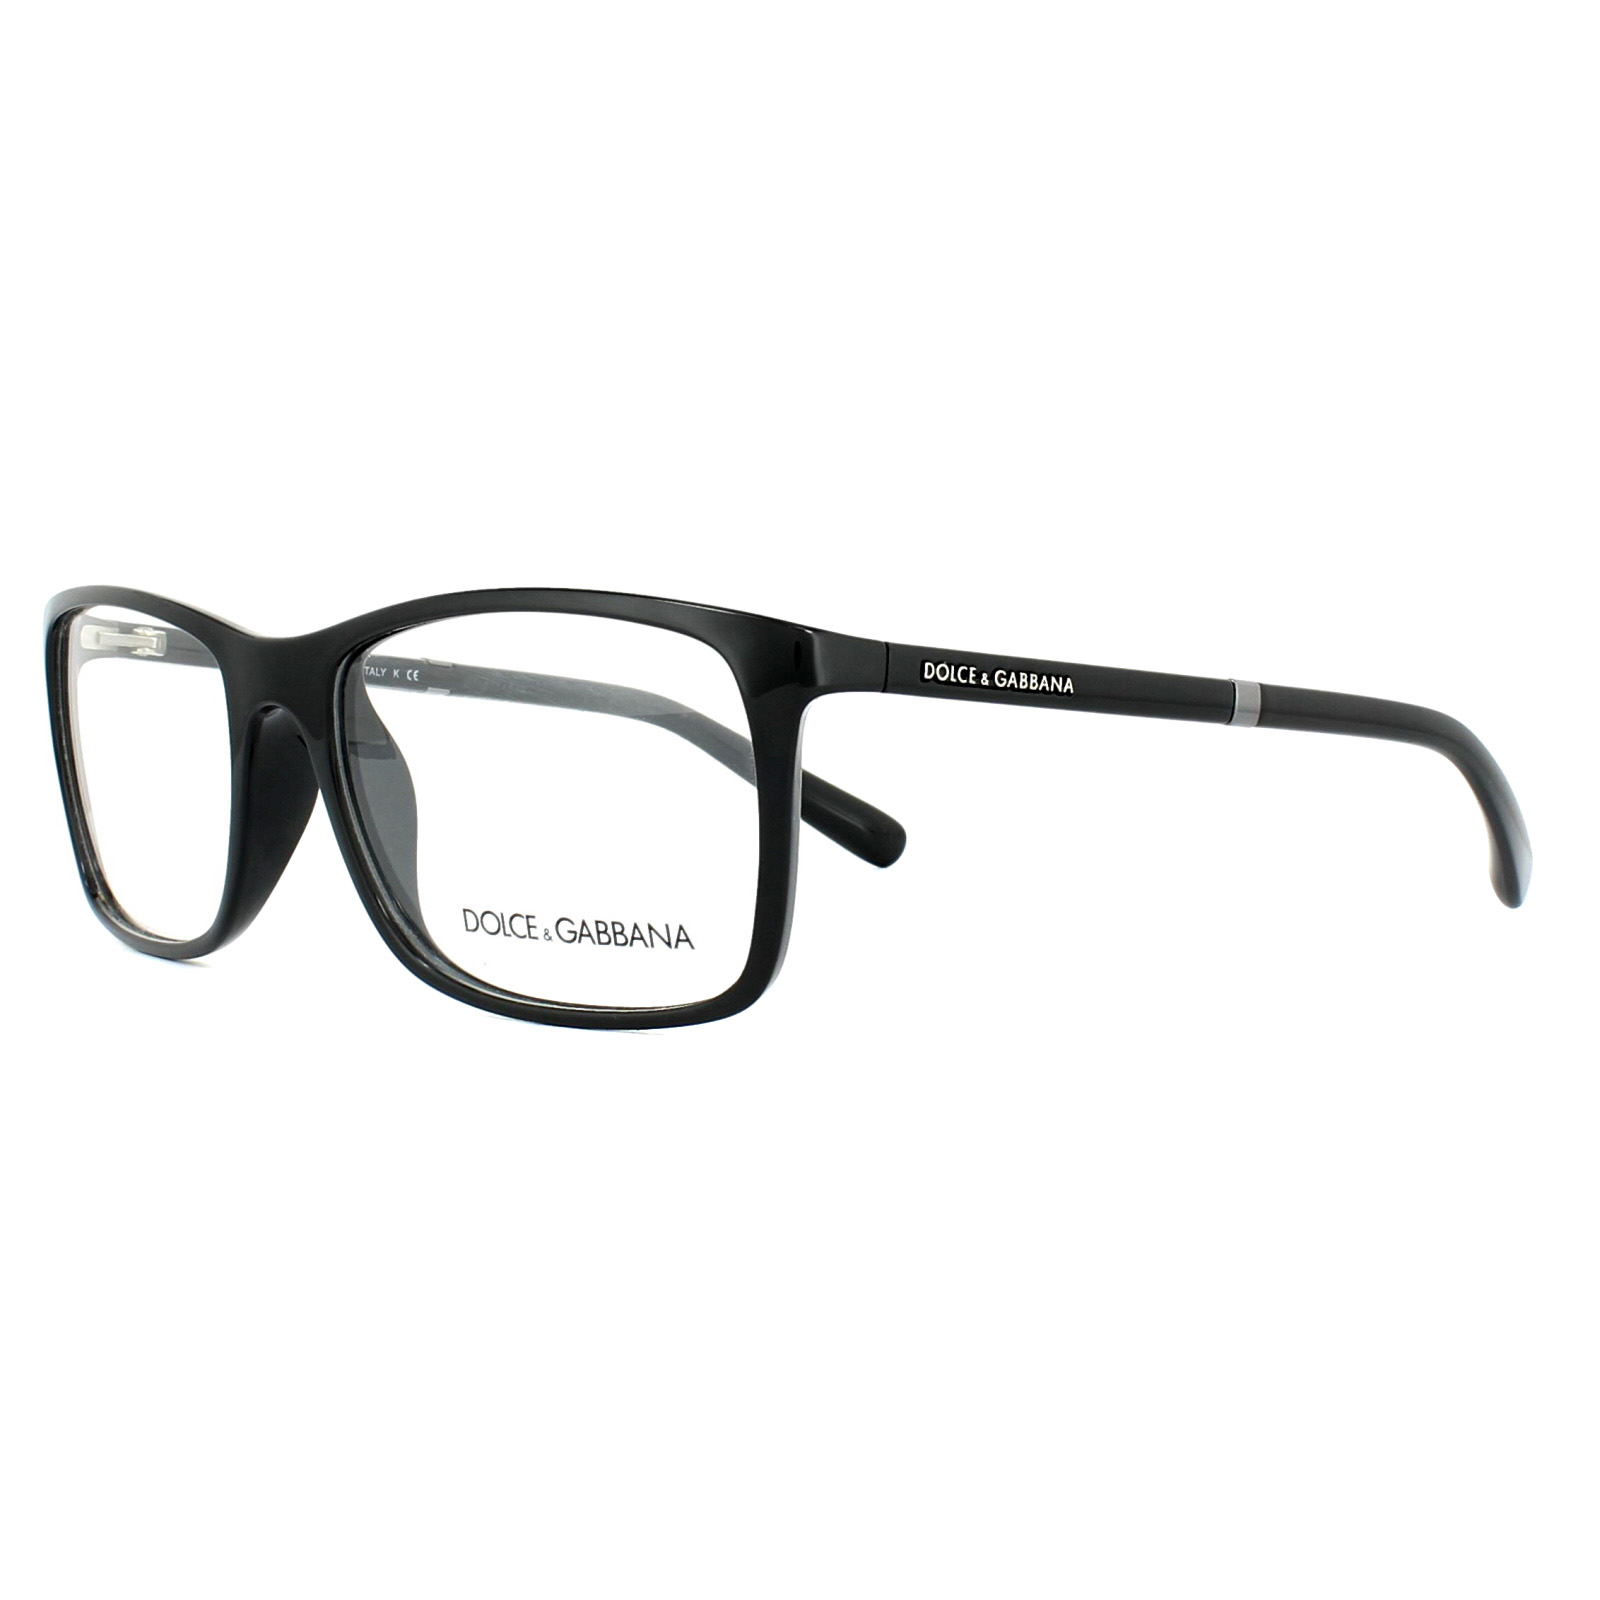 Cheap Dolce & Gabbana DG 5004 Glasses Frames - Discounted Sunglasses